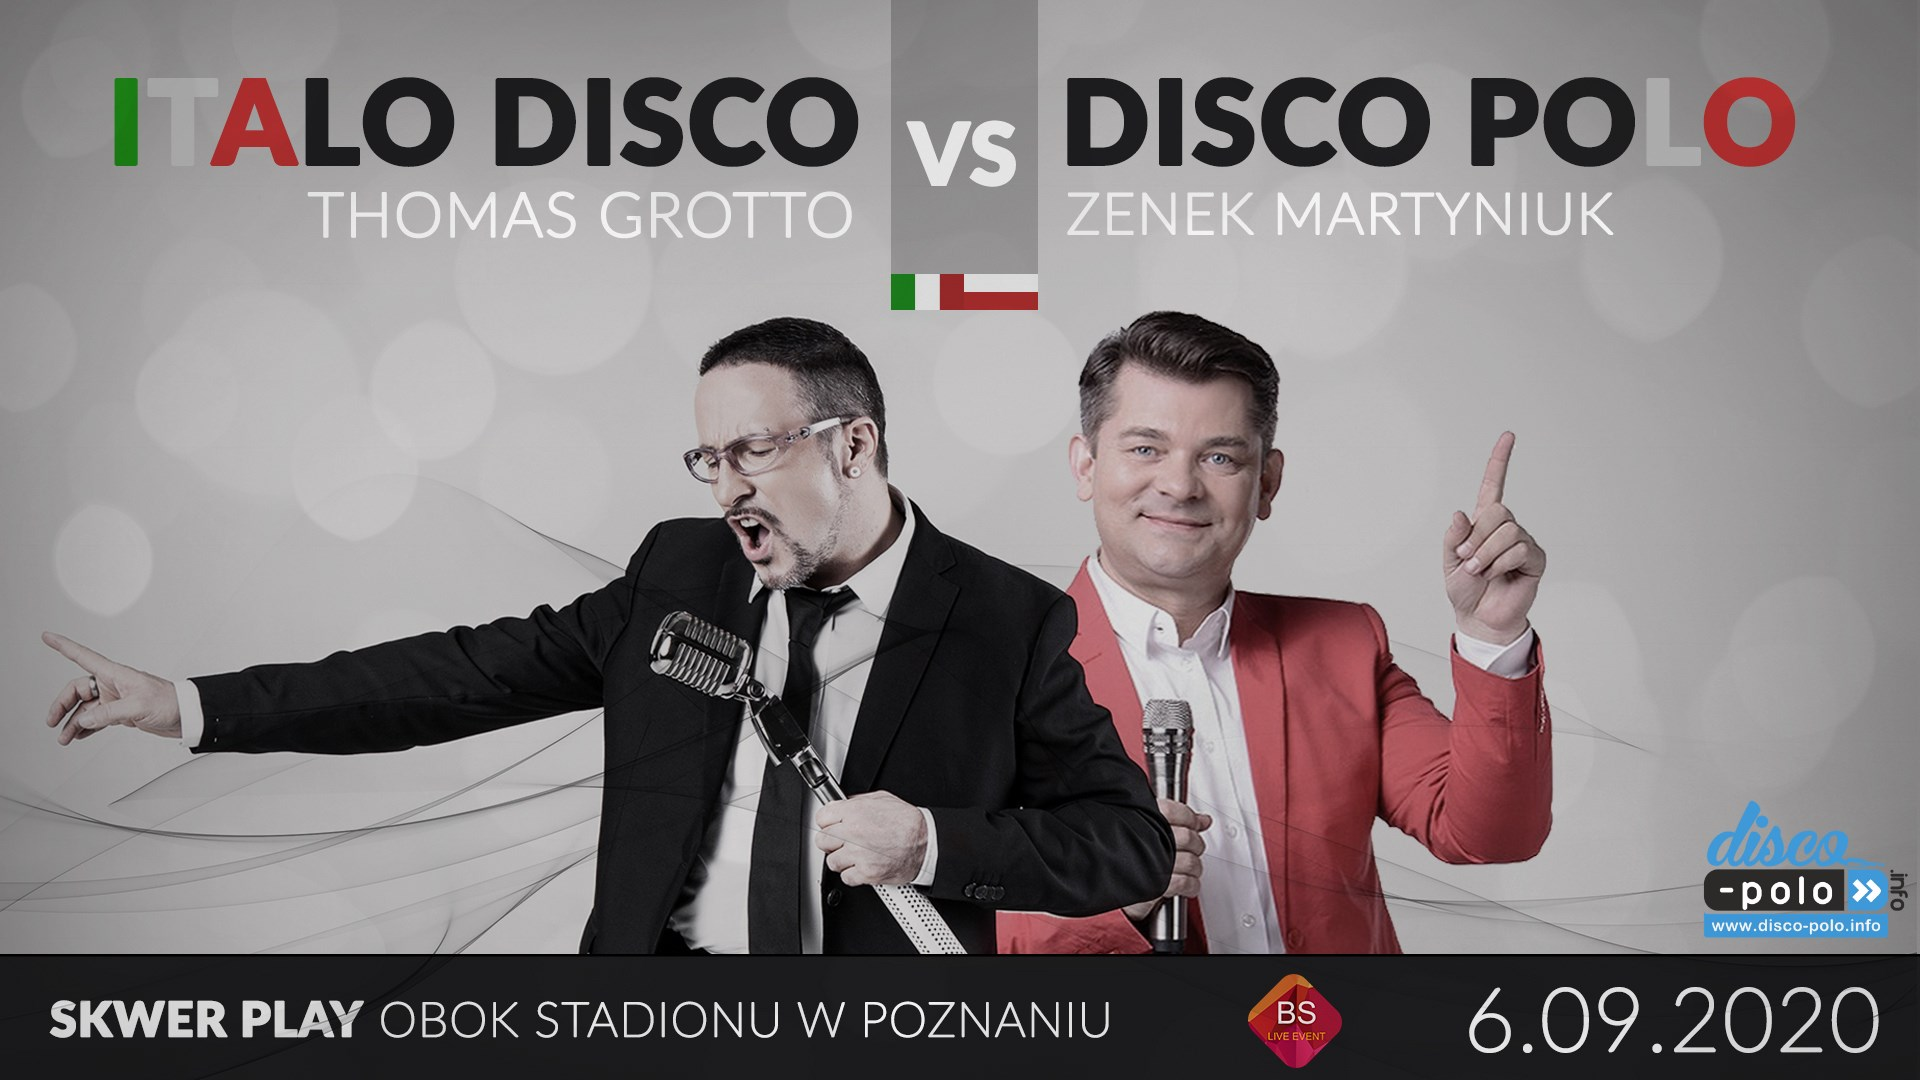 ITALO DISCO VS DISCO POLO - Zenek Martyniuk i Thomas Grotto